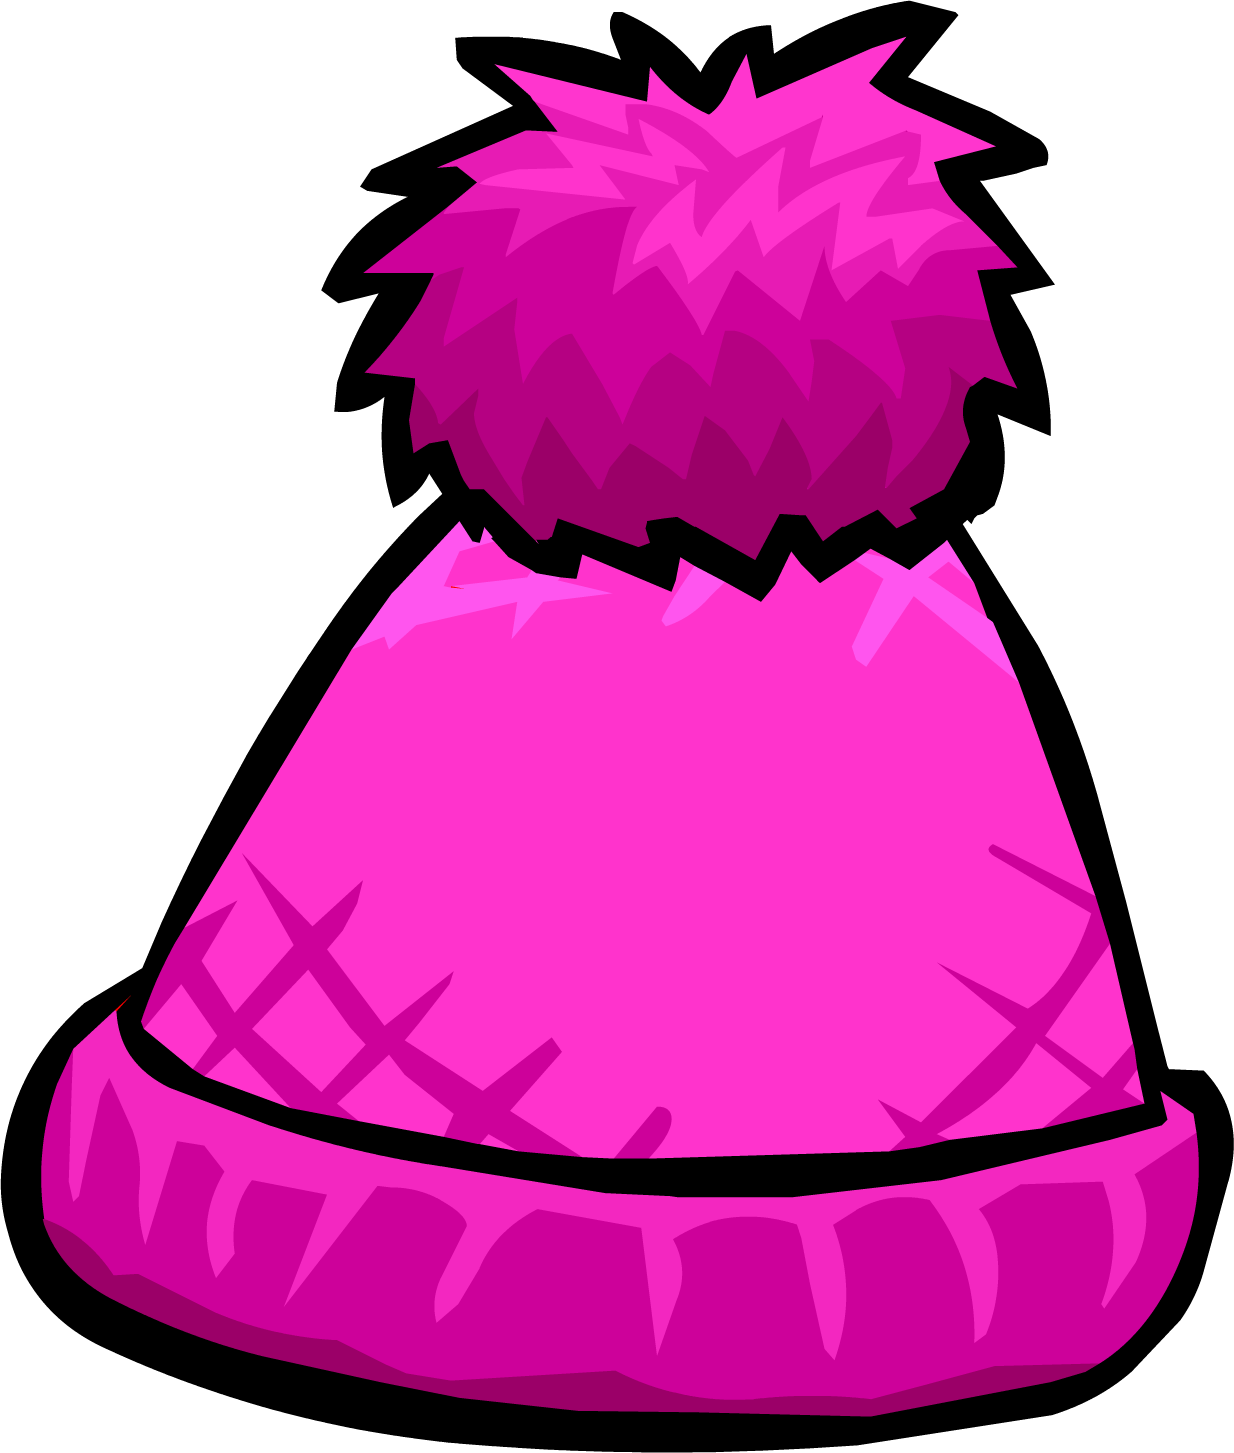 Club clipart pompom Powered  by Fandom Club